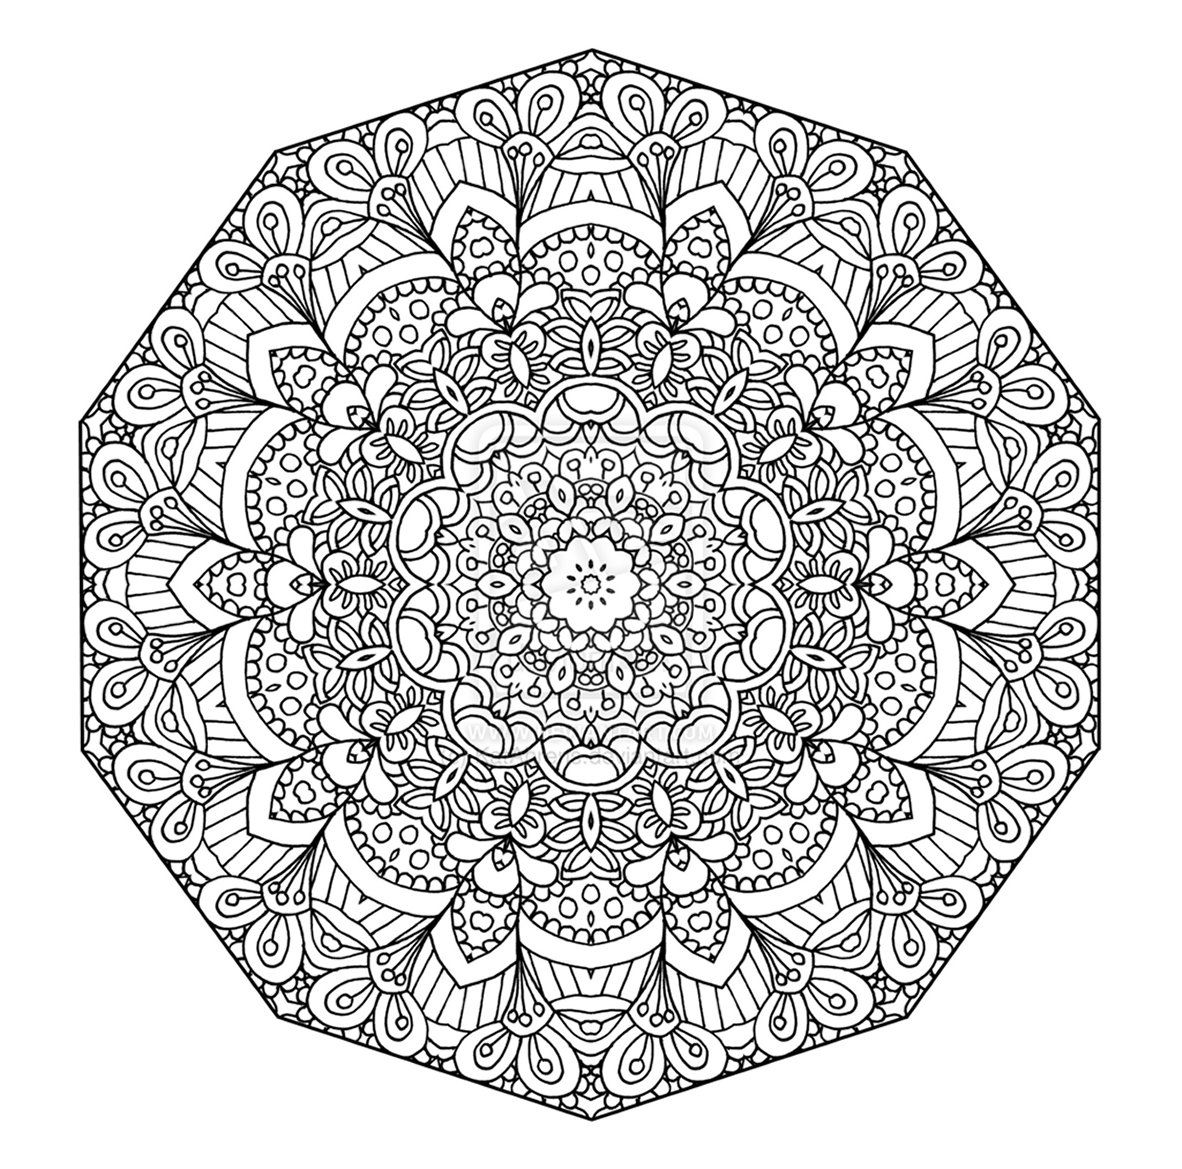 Mandala pages for coloring - Detailed Coloring Pages For Teenagers Detailed Abstract Coloring Pages For Teenagers Four More Mandala